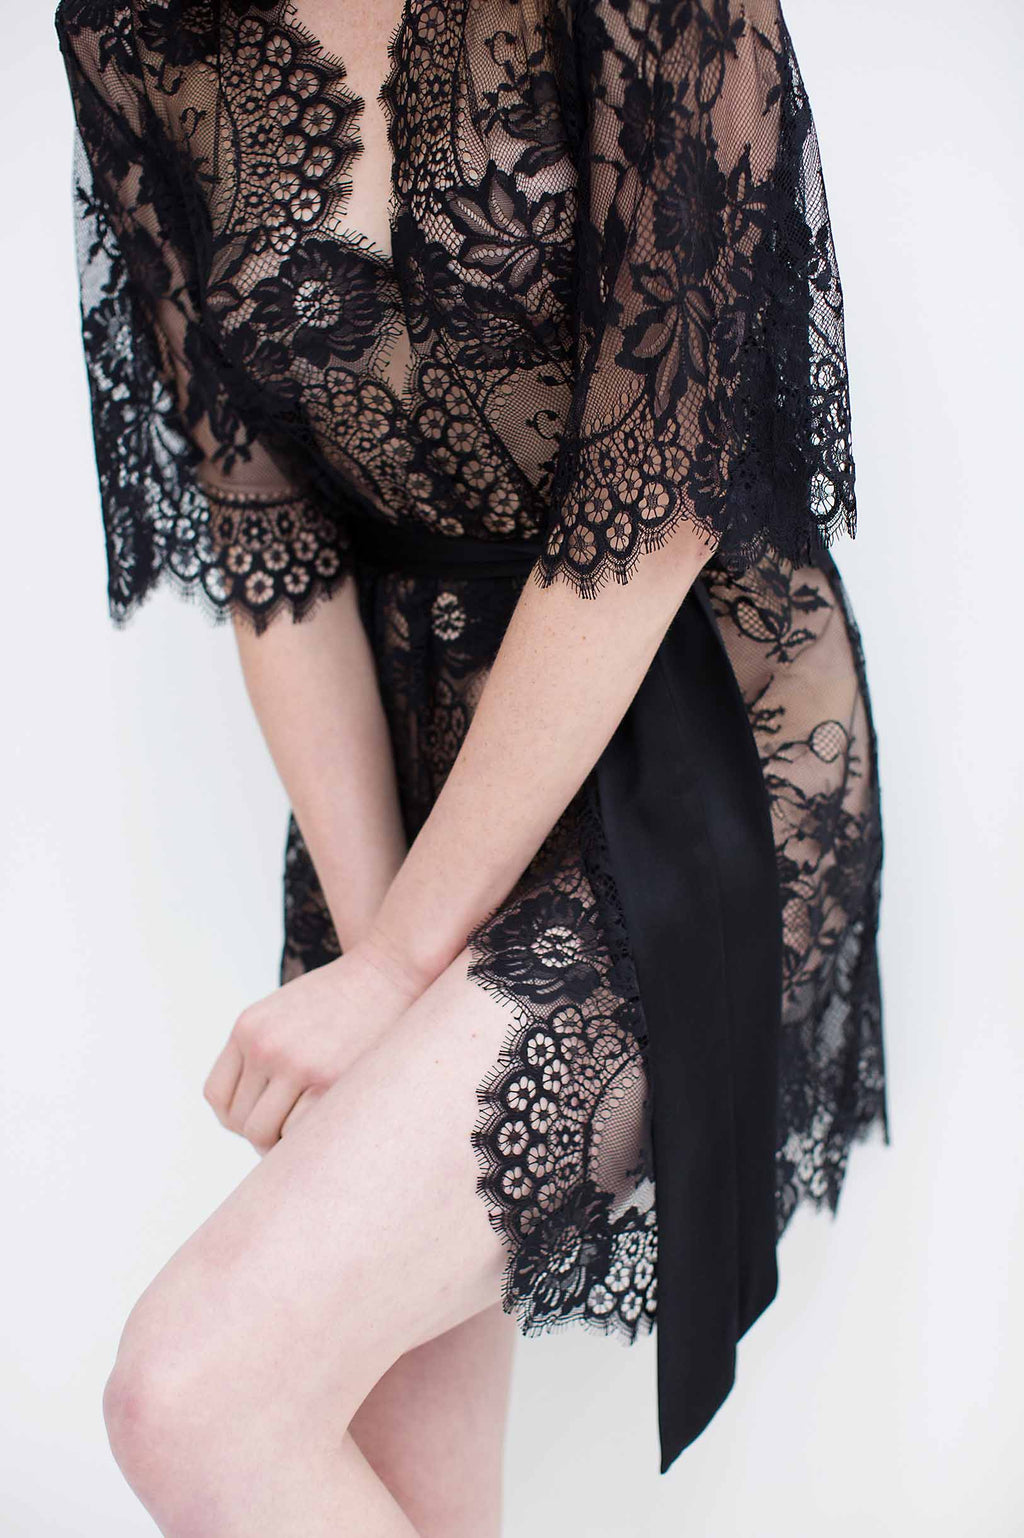 Swan Queen French lace kimono robe in Black - style 102SH